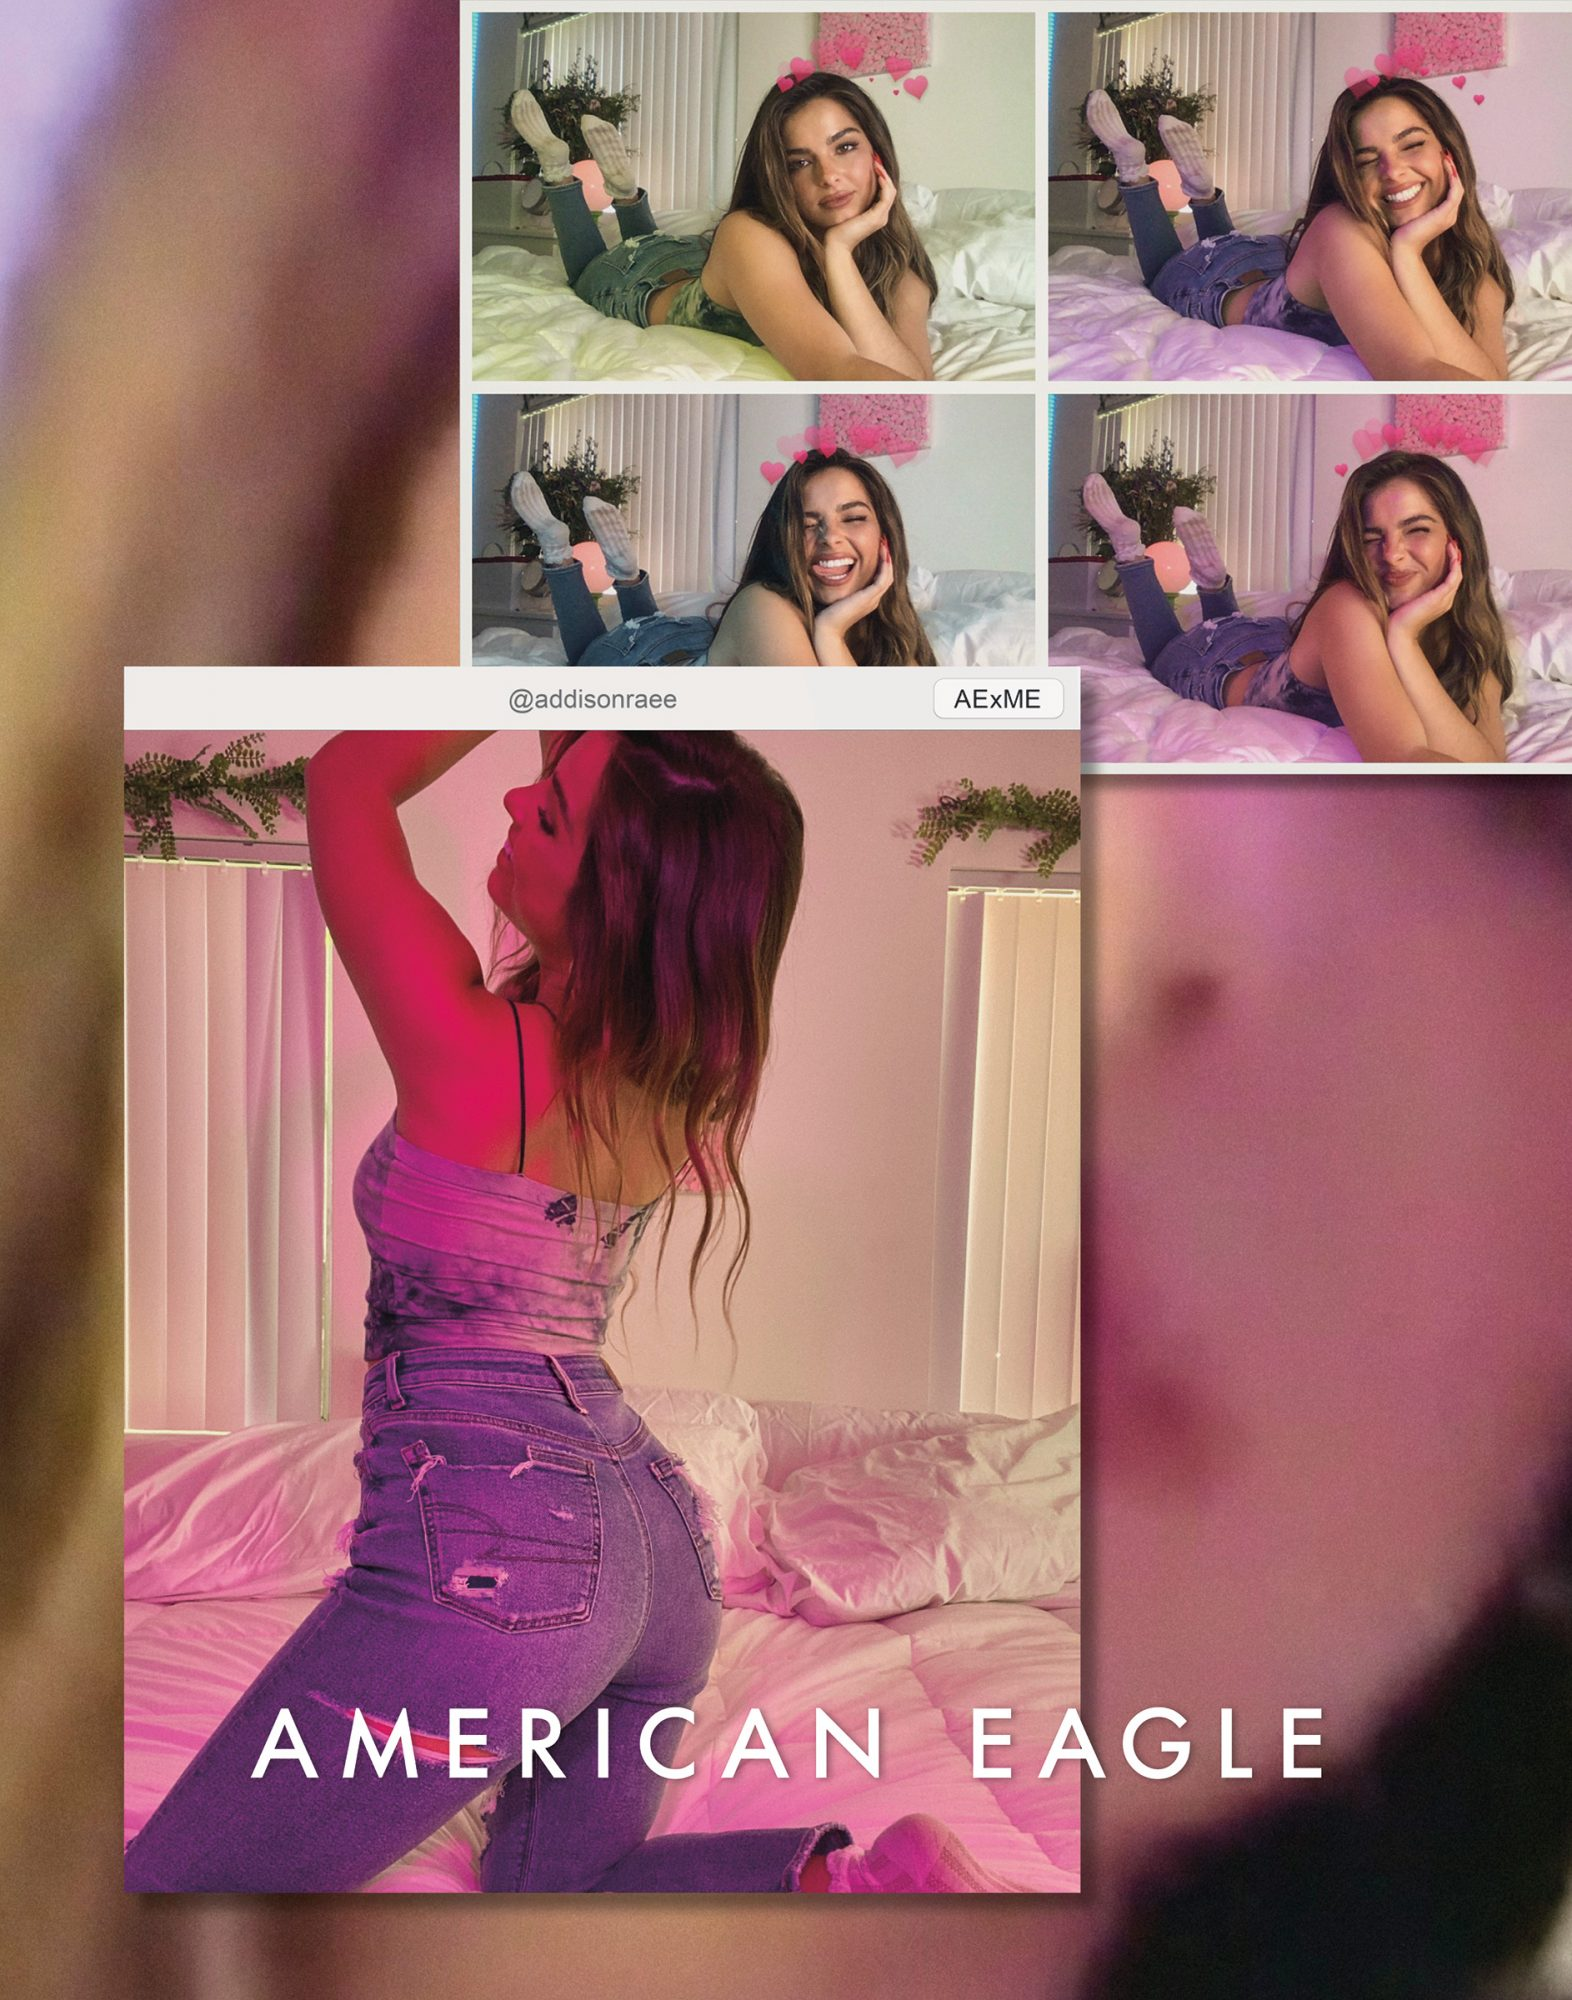 Addison Rae for American Eagle